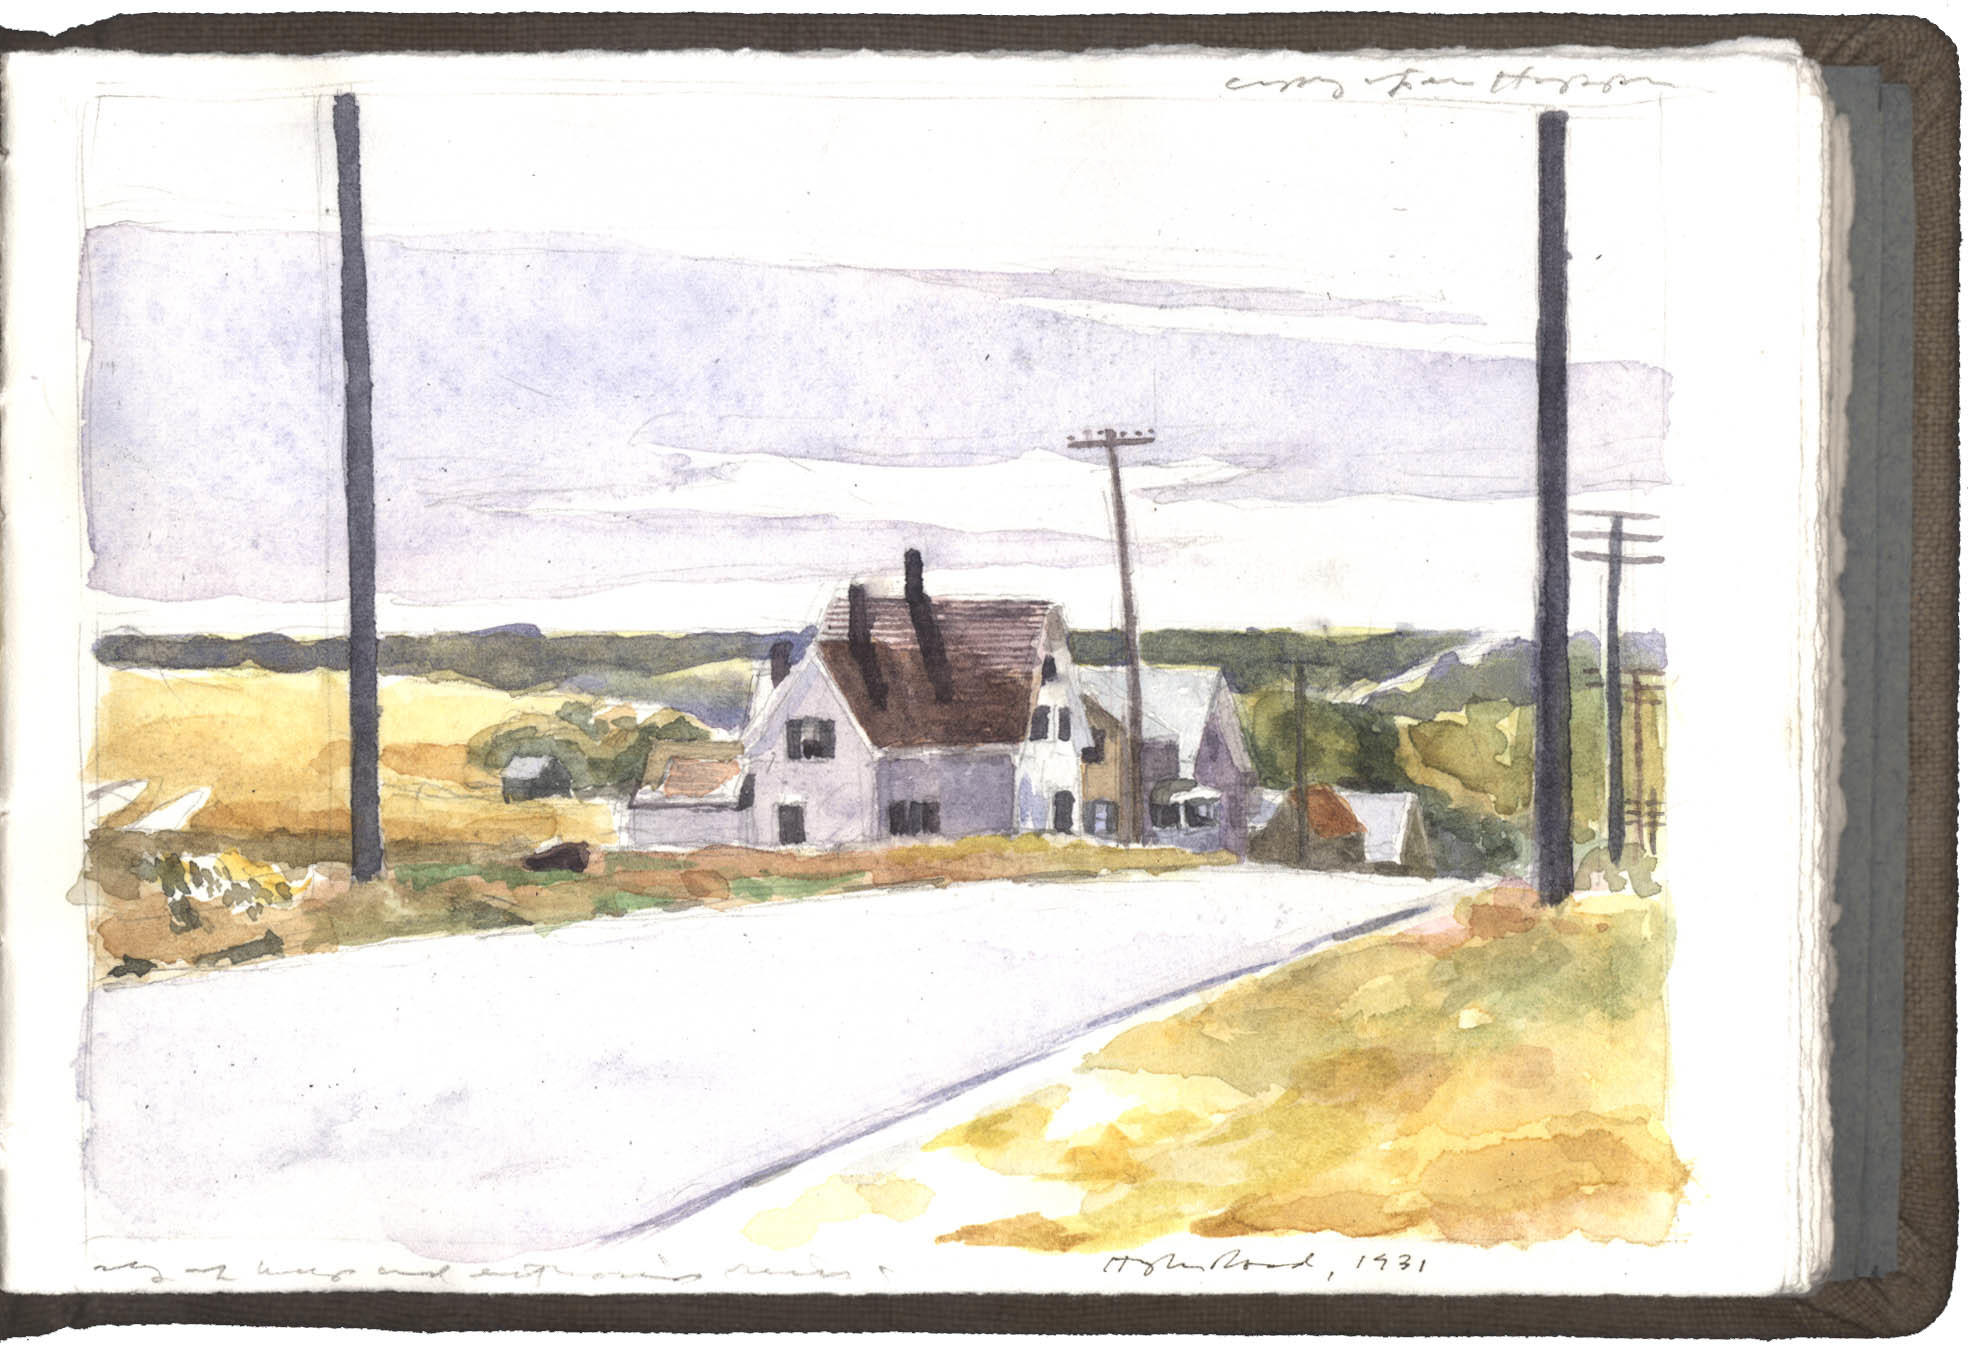 Copy after Edward Hopper watercolor image